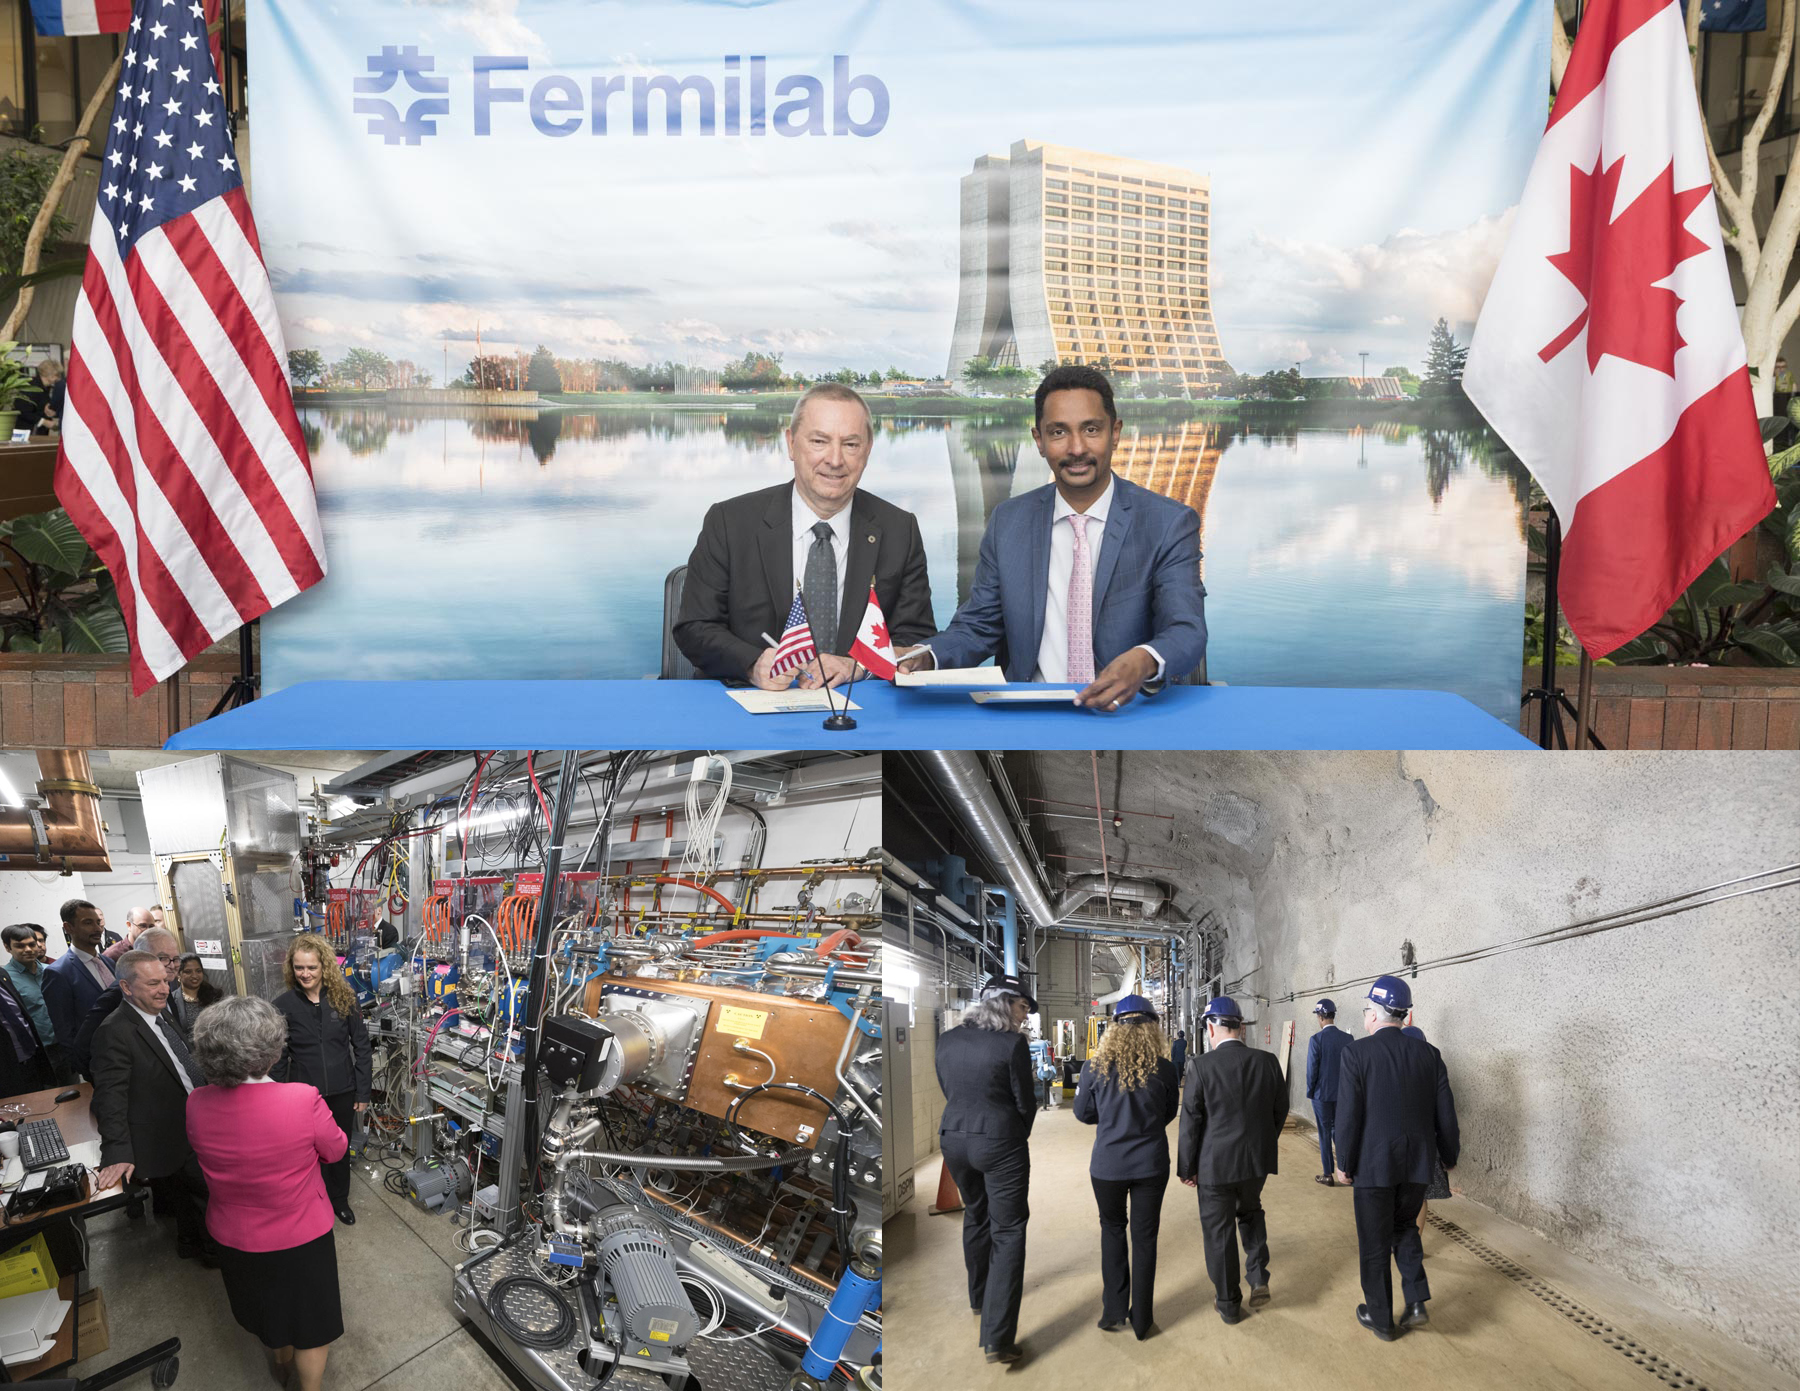 During the visit, a partnership was signed between Fermilab and York University, the first international agreement of this nature for Fermilab. They will collaborate to undertake the world's most ambitious neutrino experiment, the Deep Underground Neutrino Experiment.